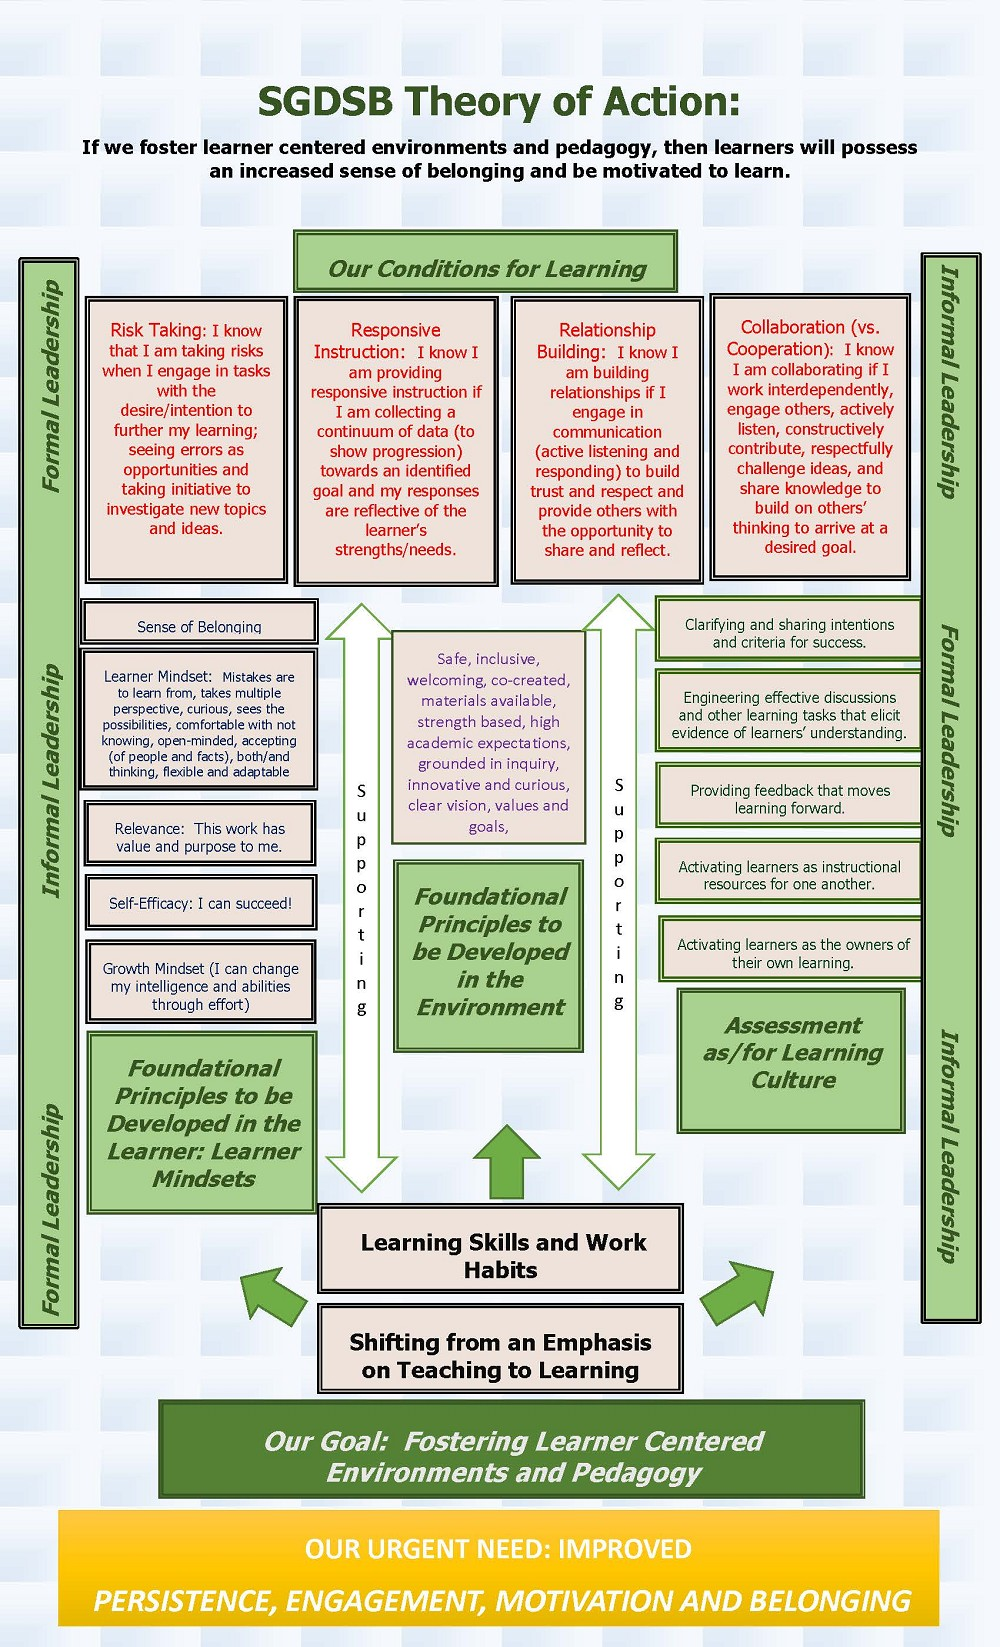 SGDSB Theory of Action Graphic